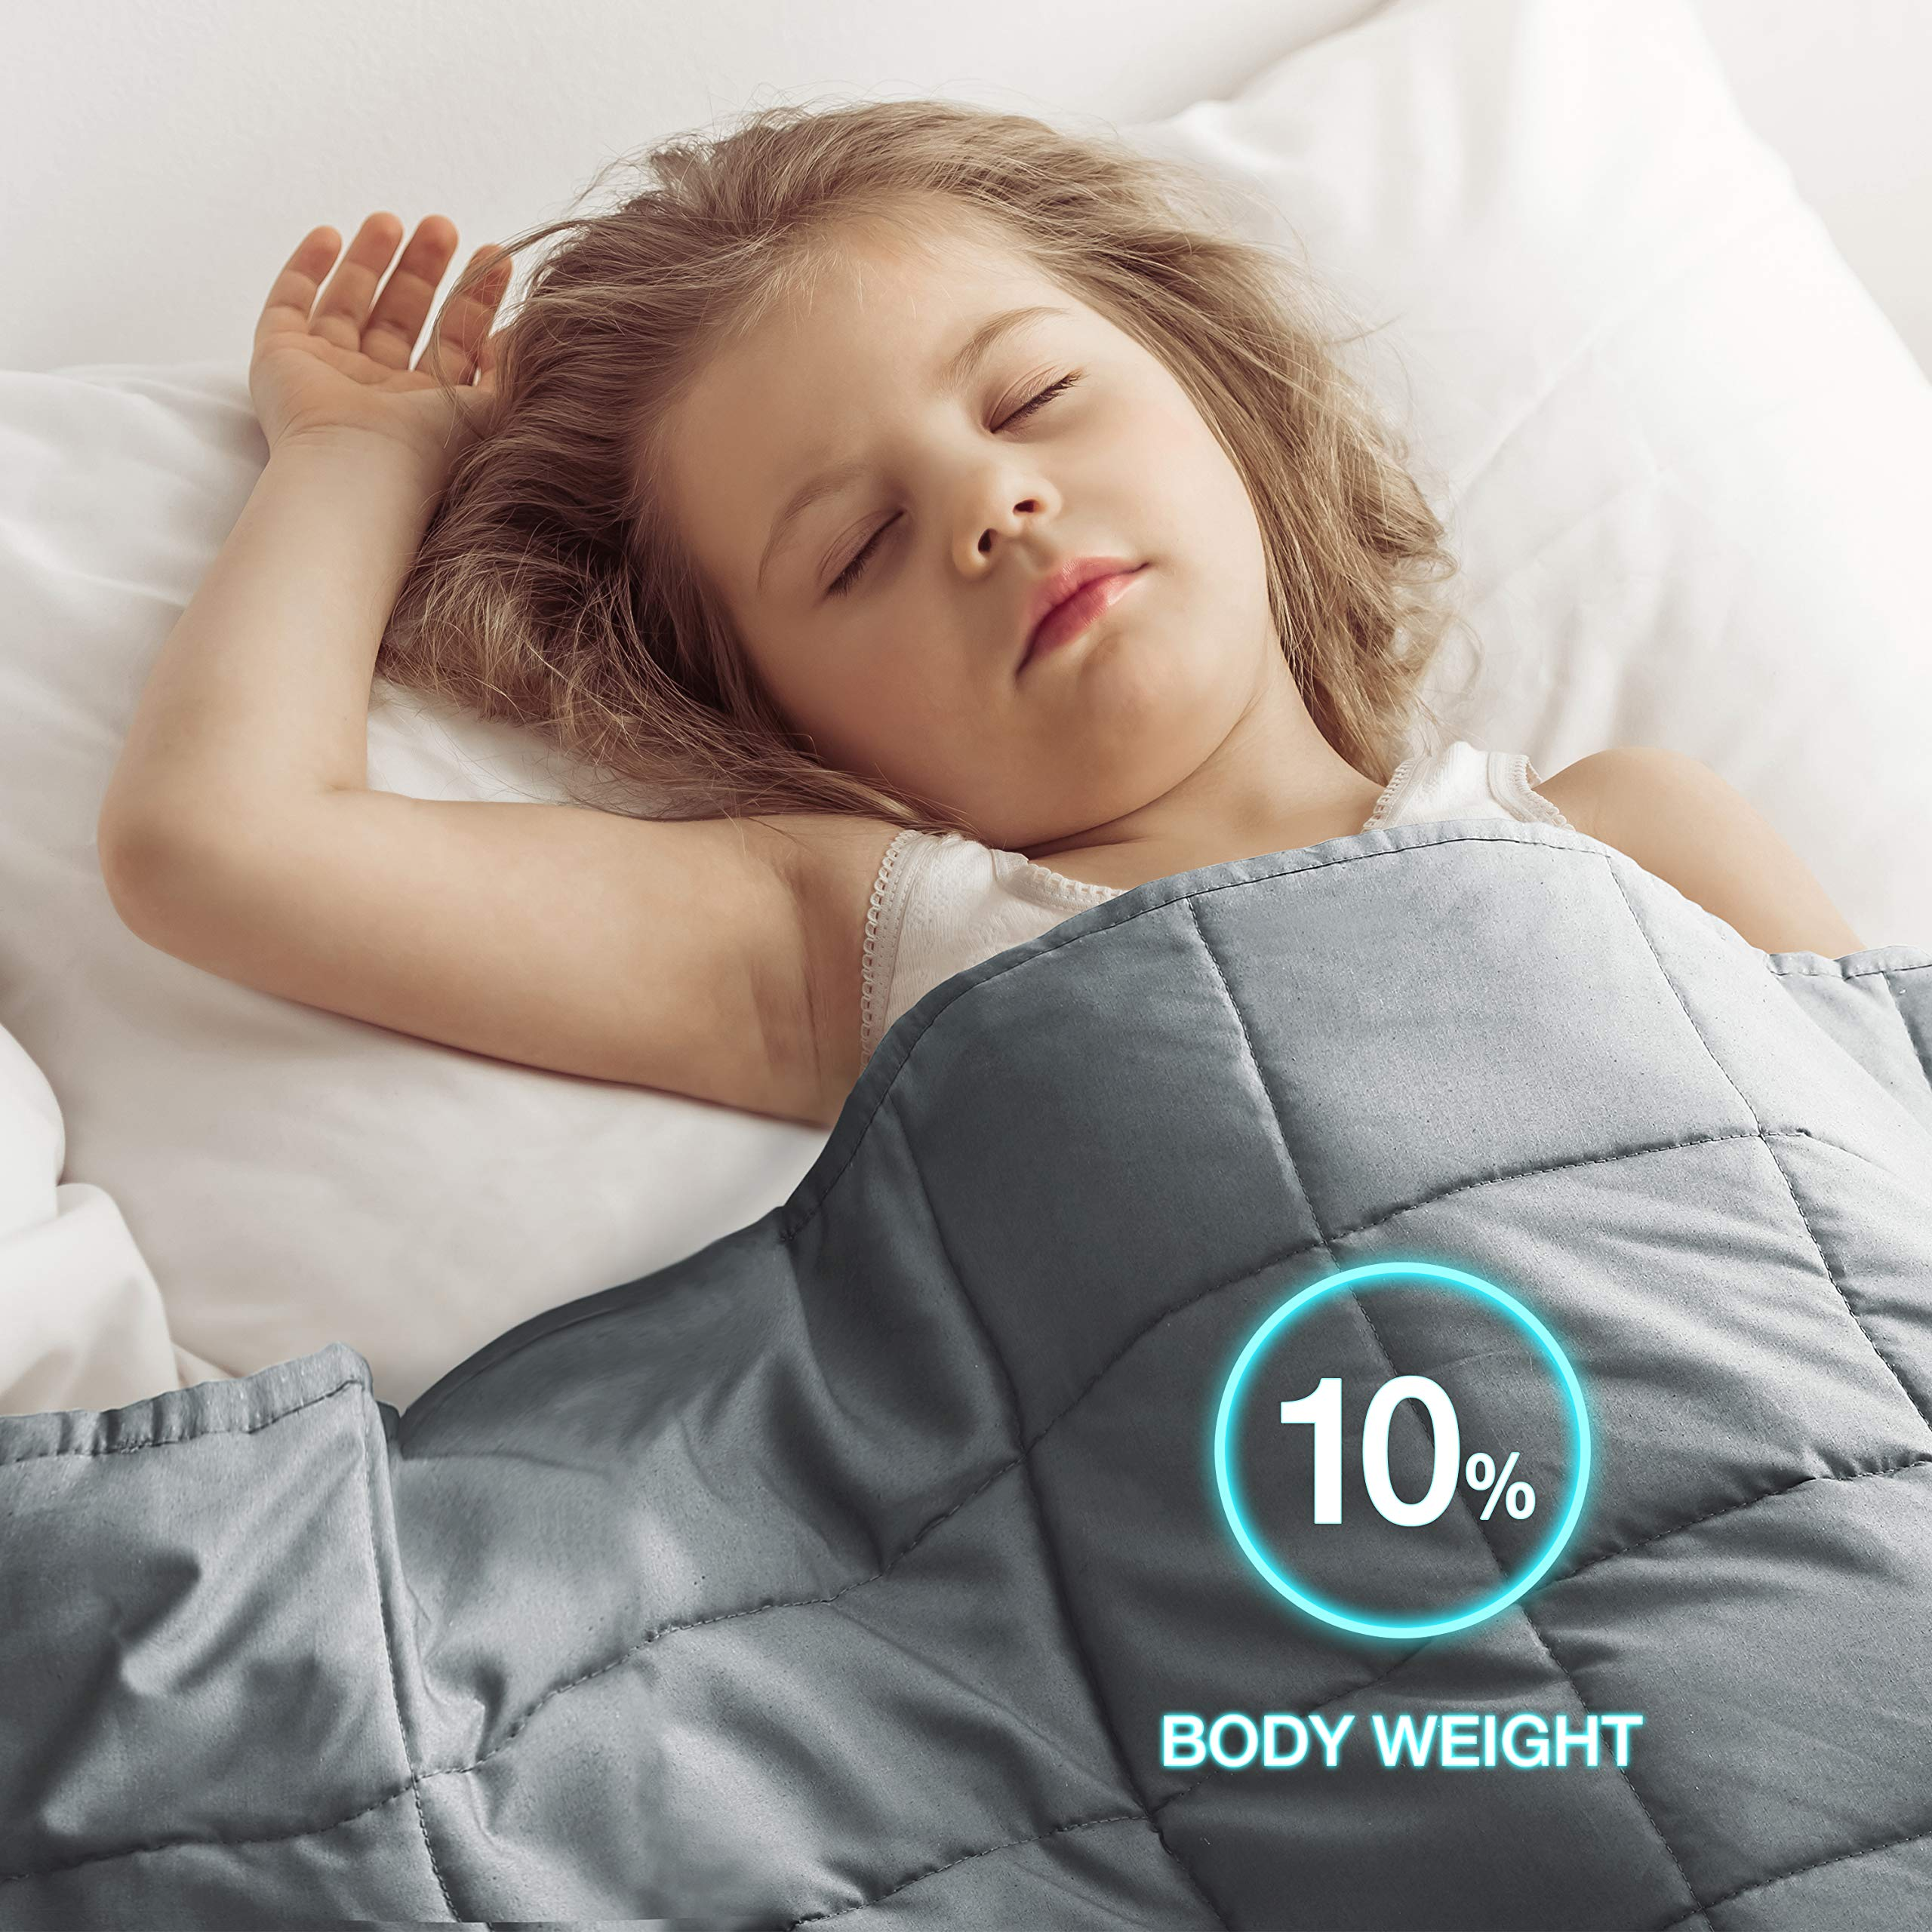 EXQ Home Weighted Blanket 5 lbs for Kids Heavy Blanket Grey Super Soft Thick Blanket with Premium Glass Beads, Organic Cotton by EXQ Home